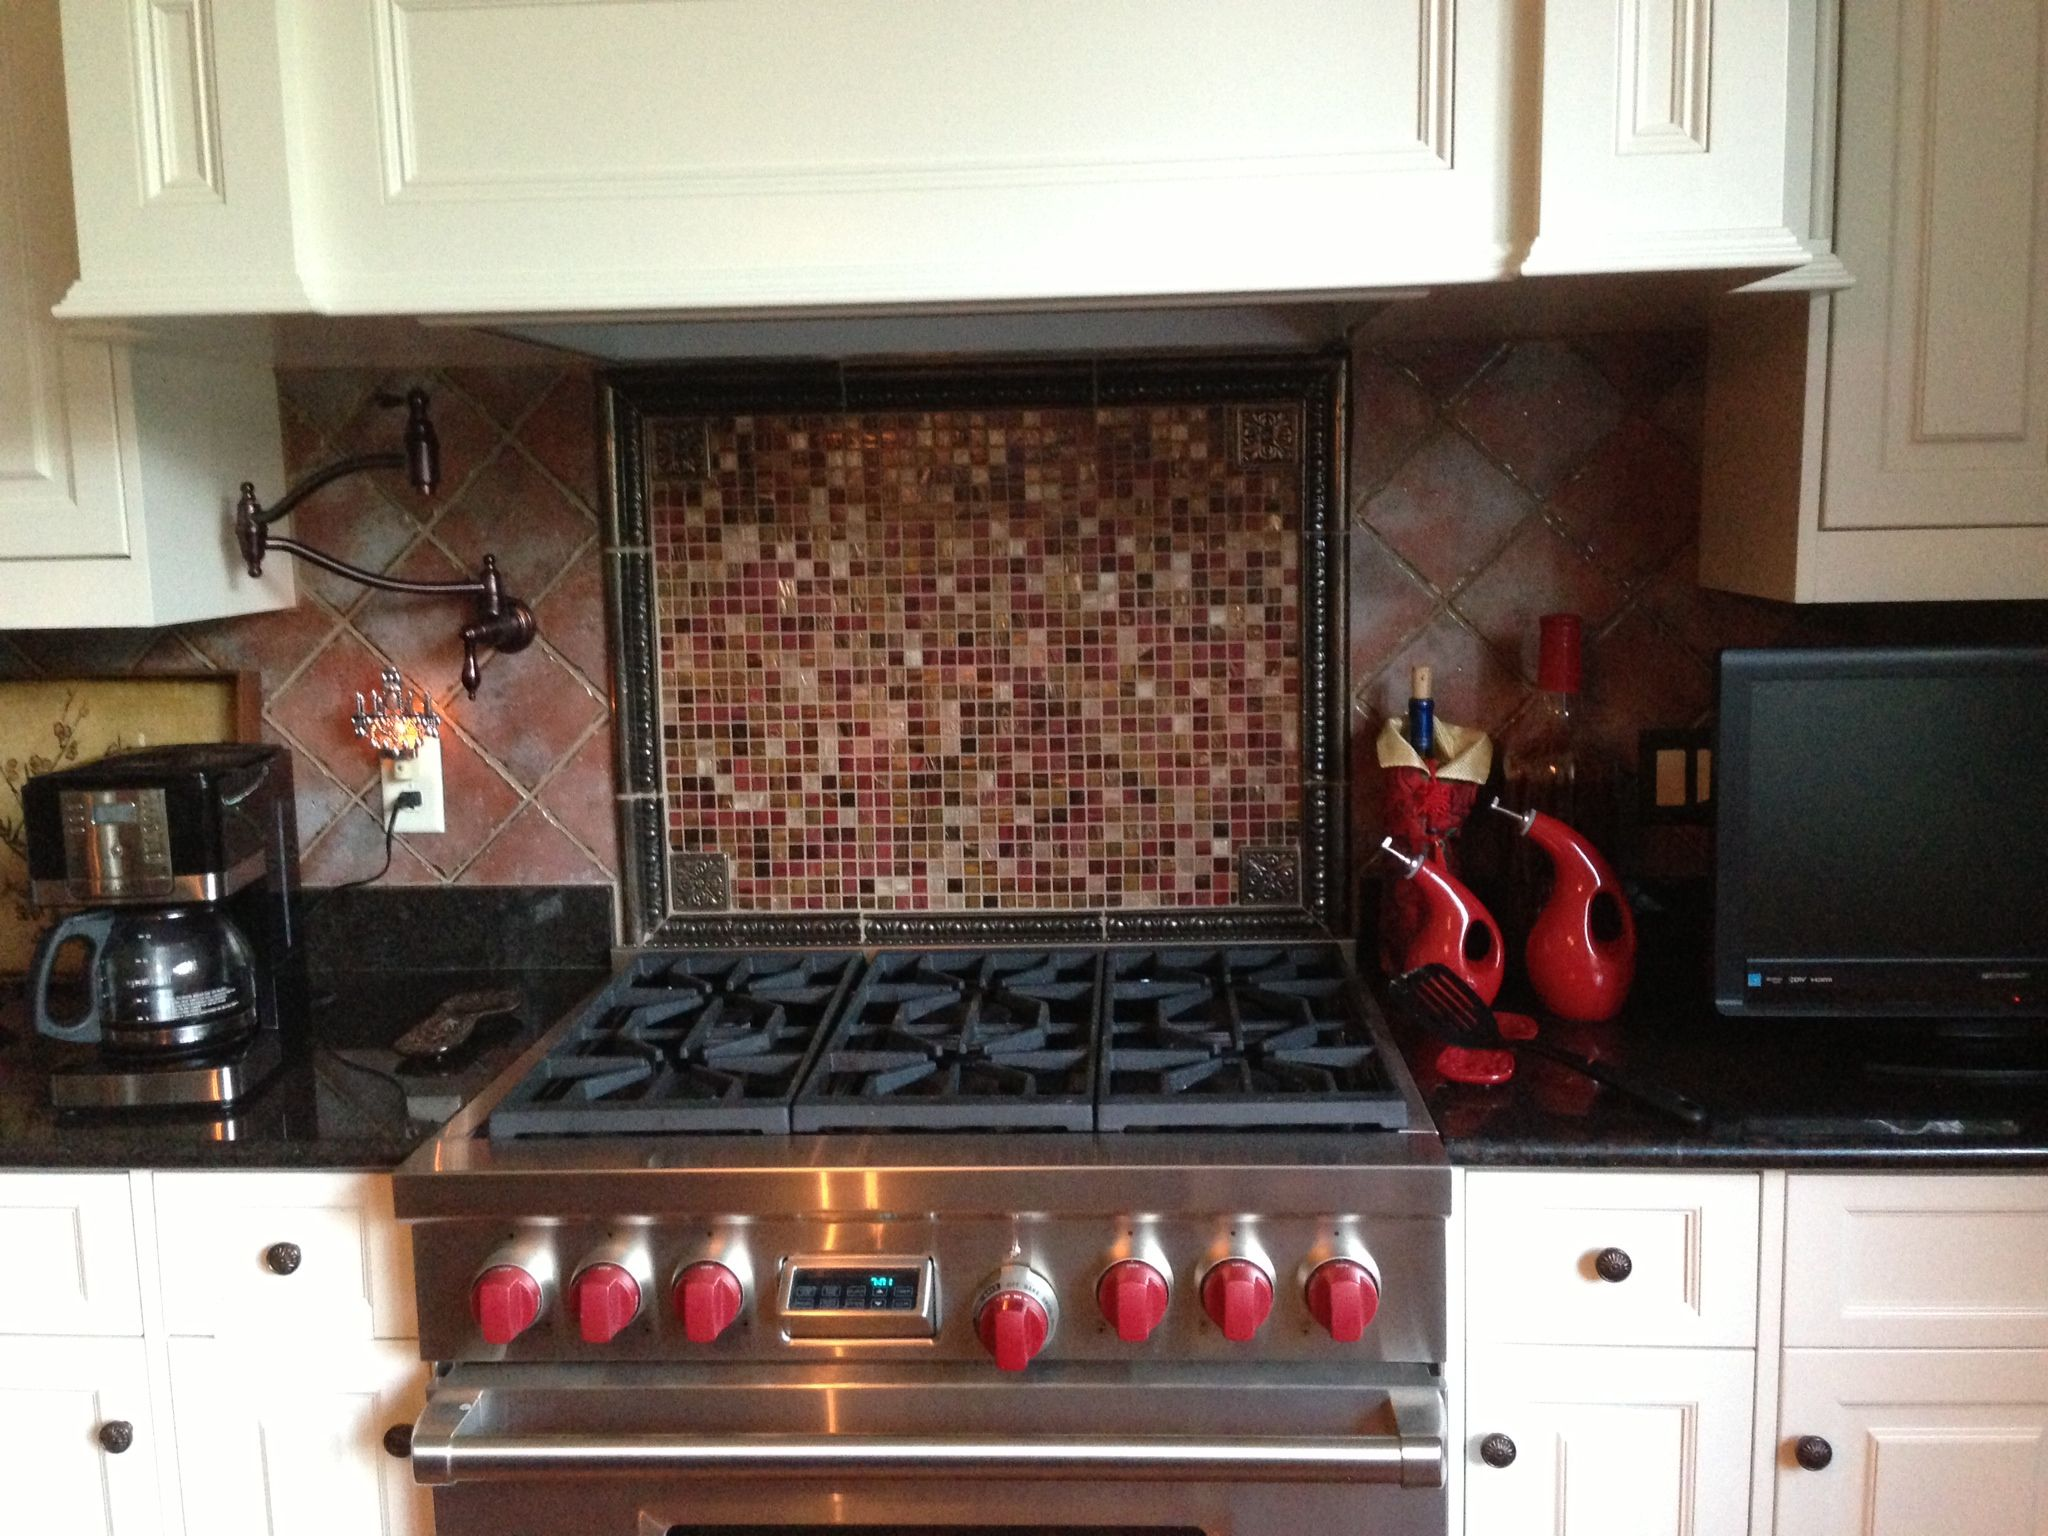 tiles in kitchen. wall tiles behind stove. | kitchen remodeling